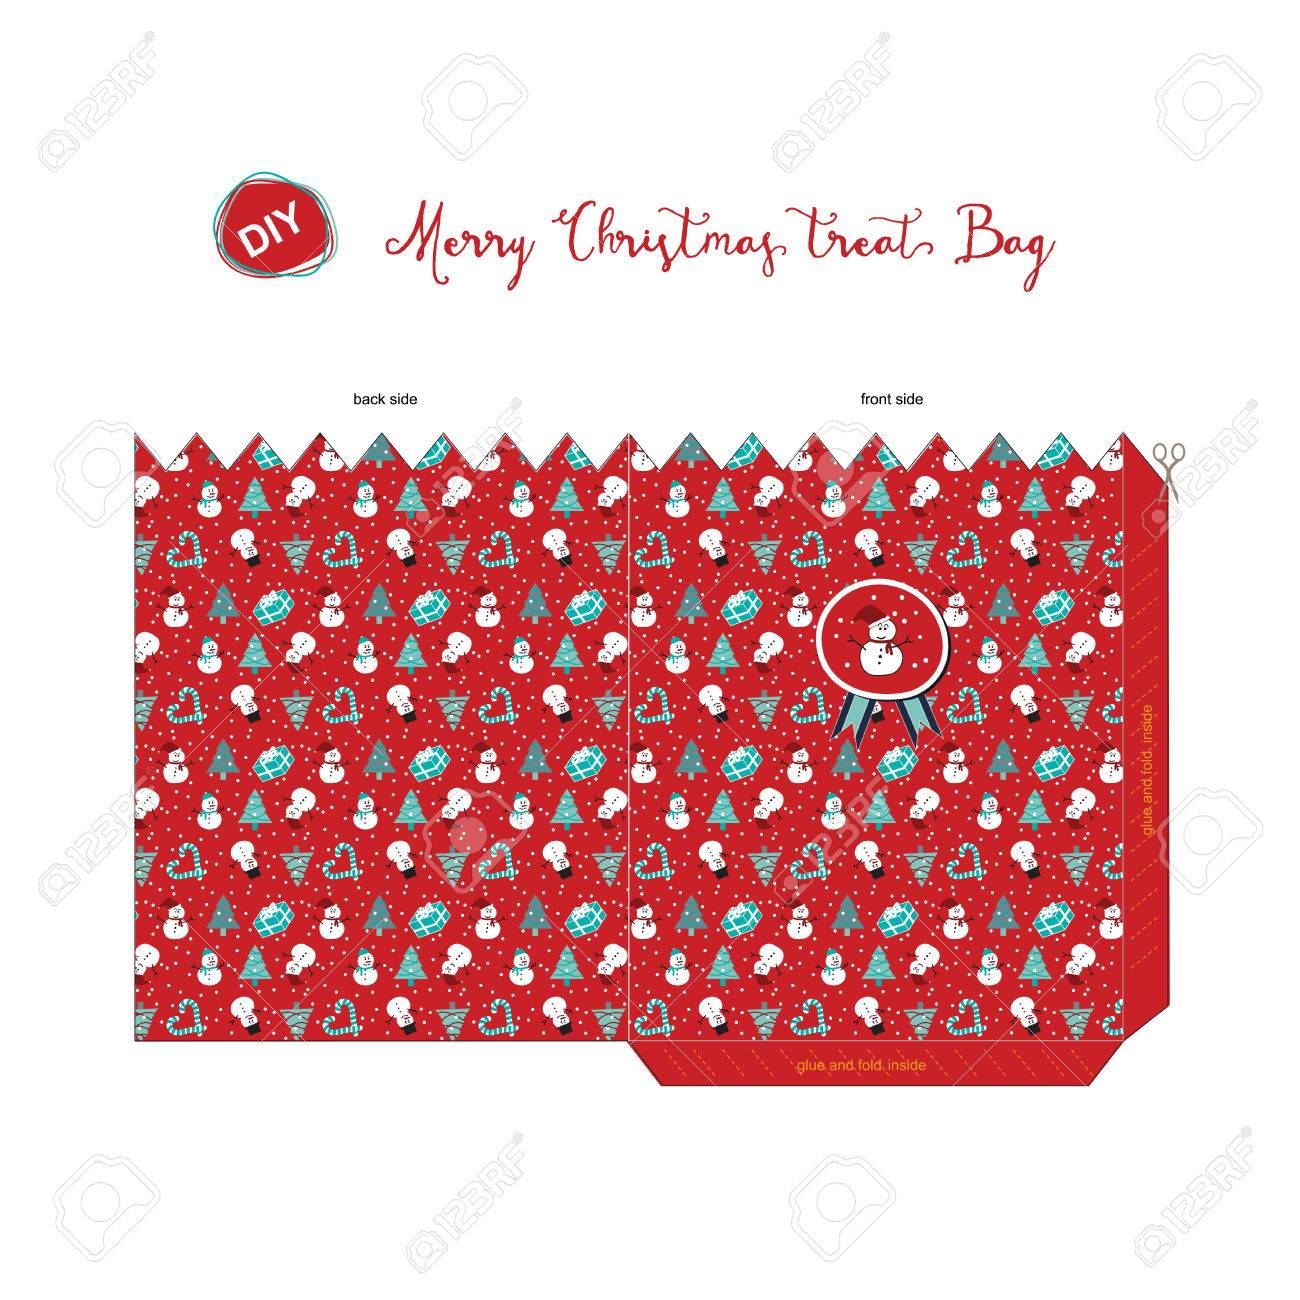 A Merry Christmas Diy Do It By Yourself Treat Bag For Season Greeting With Pattern Of